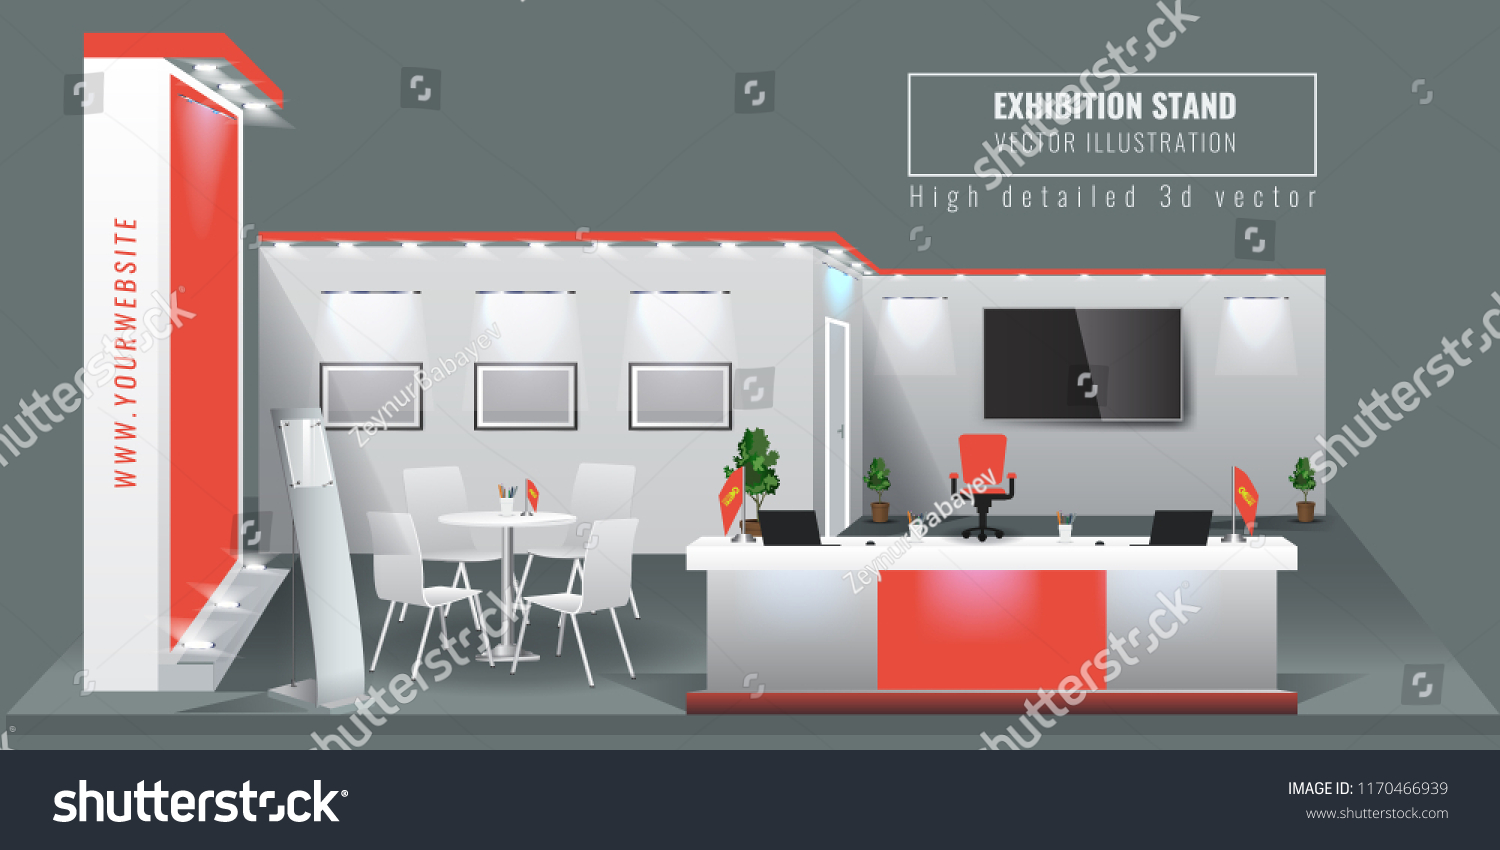 Exhibition Stand Mockup : Grand exhibition stand display mock up stock vector royalty free